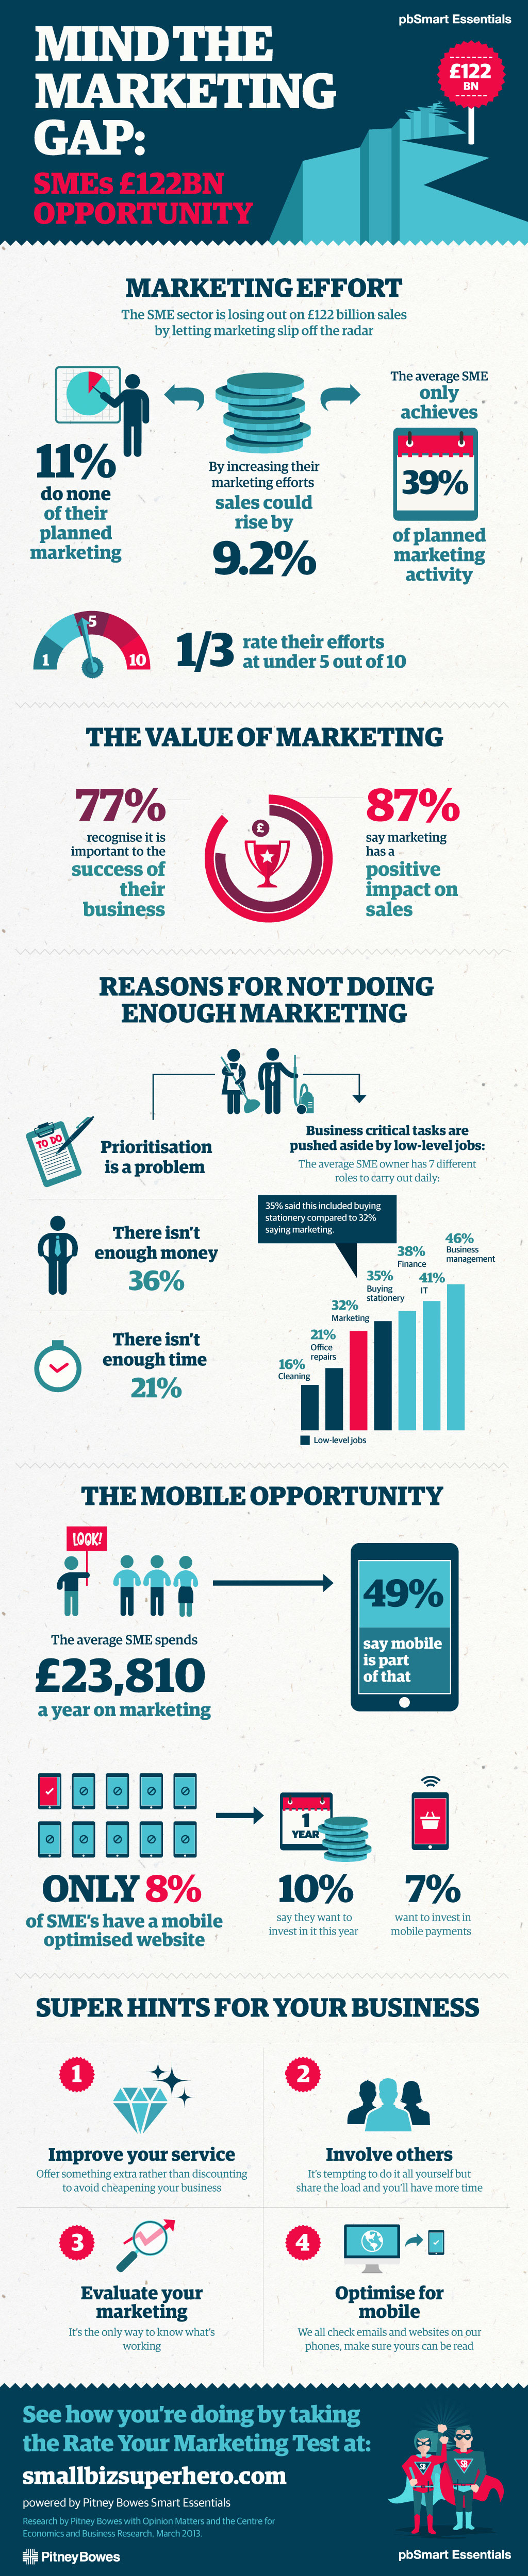 SME Marketing in Practice-Infographic